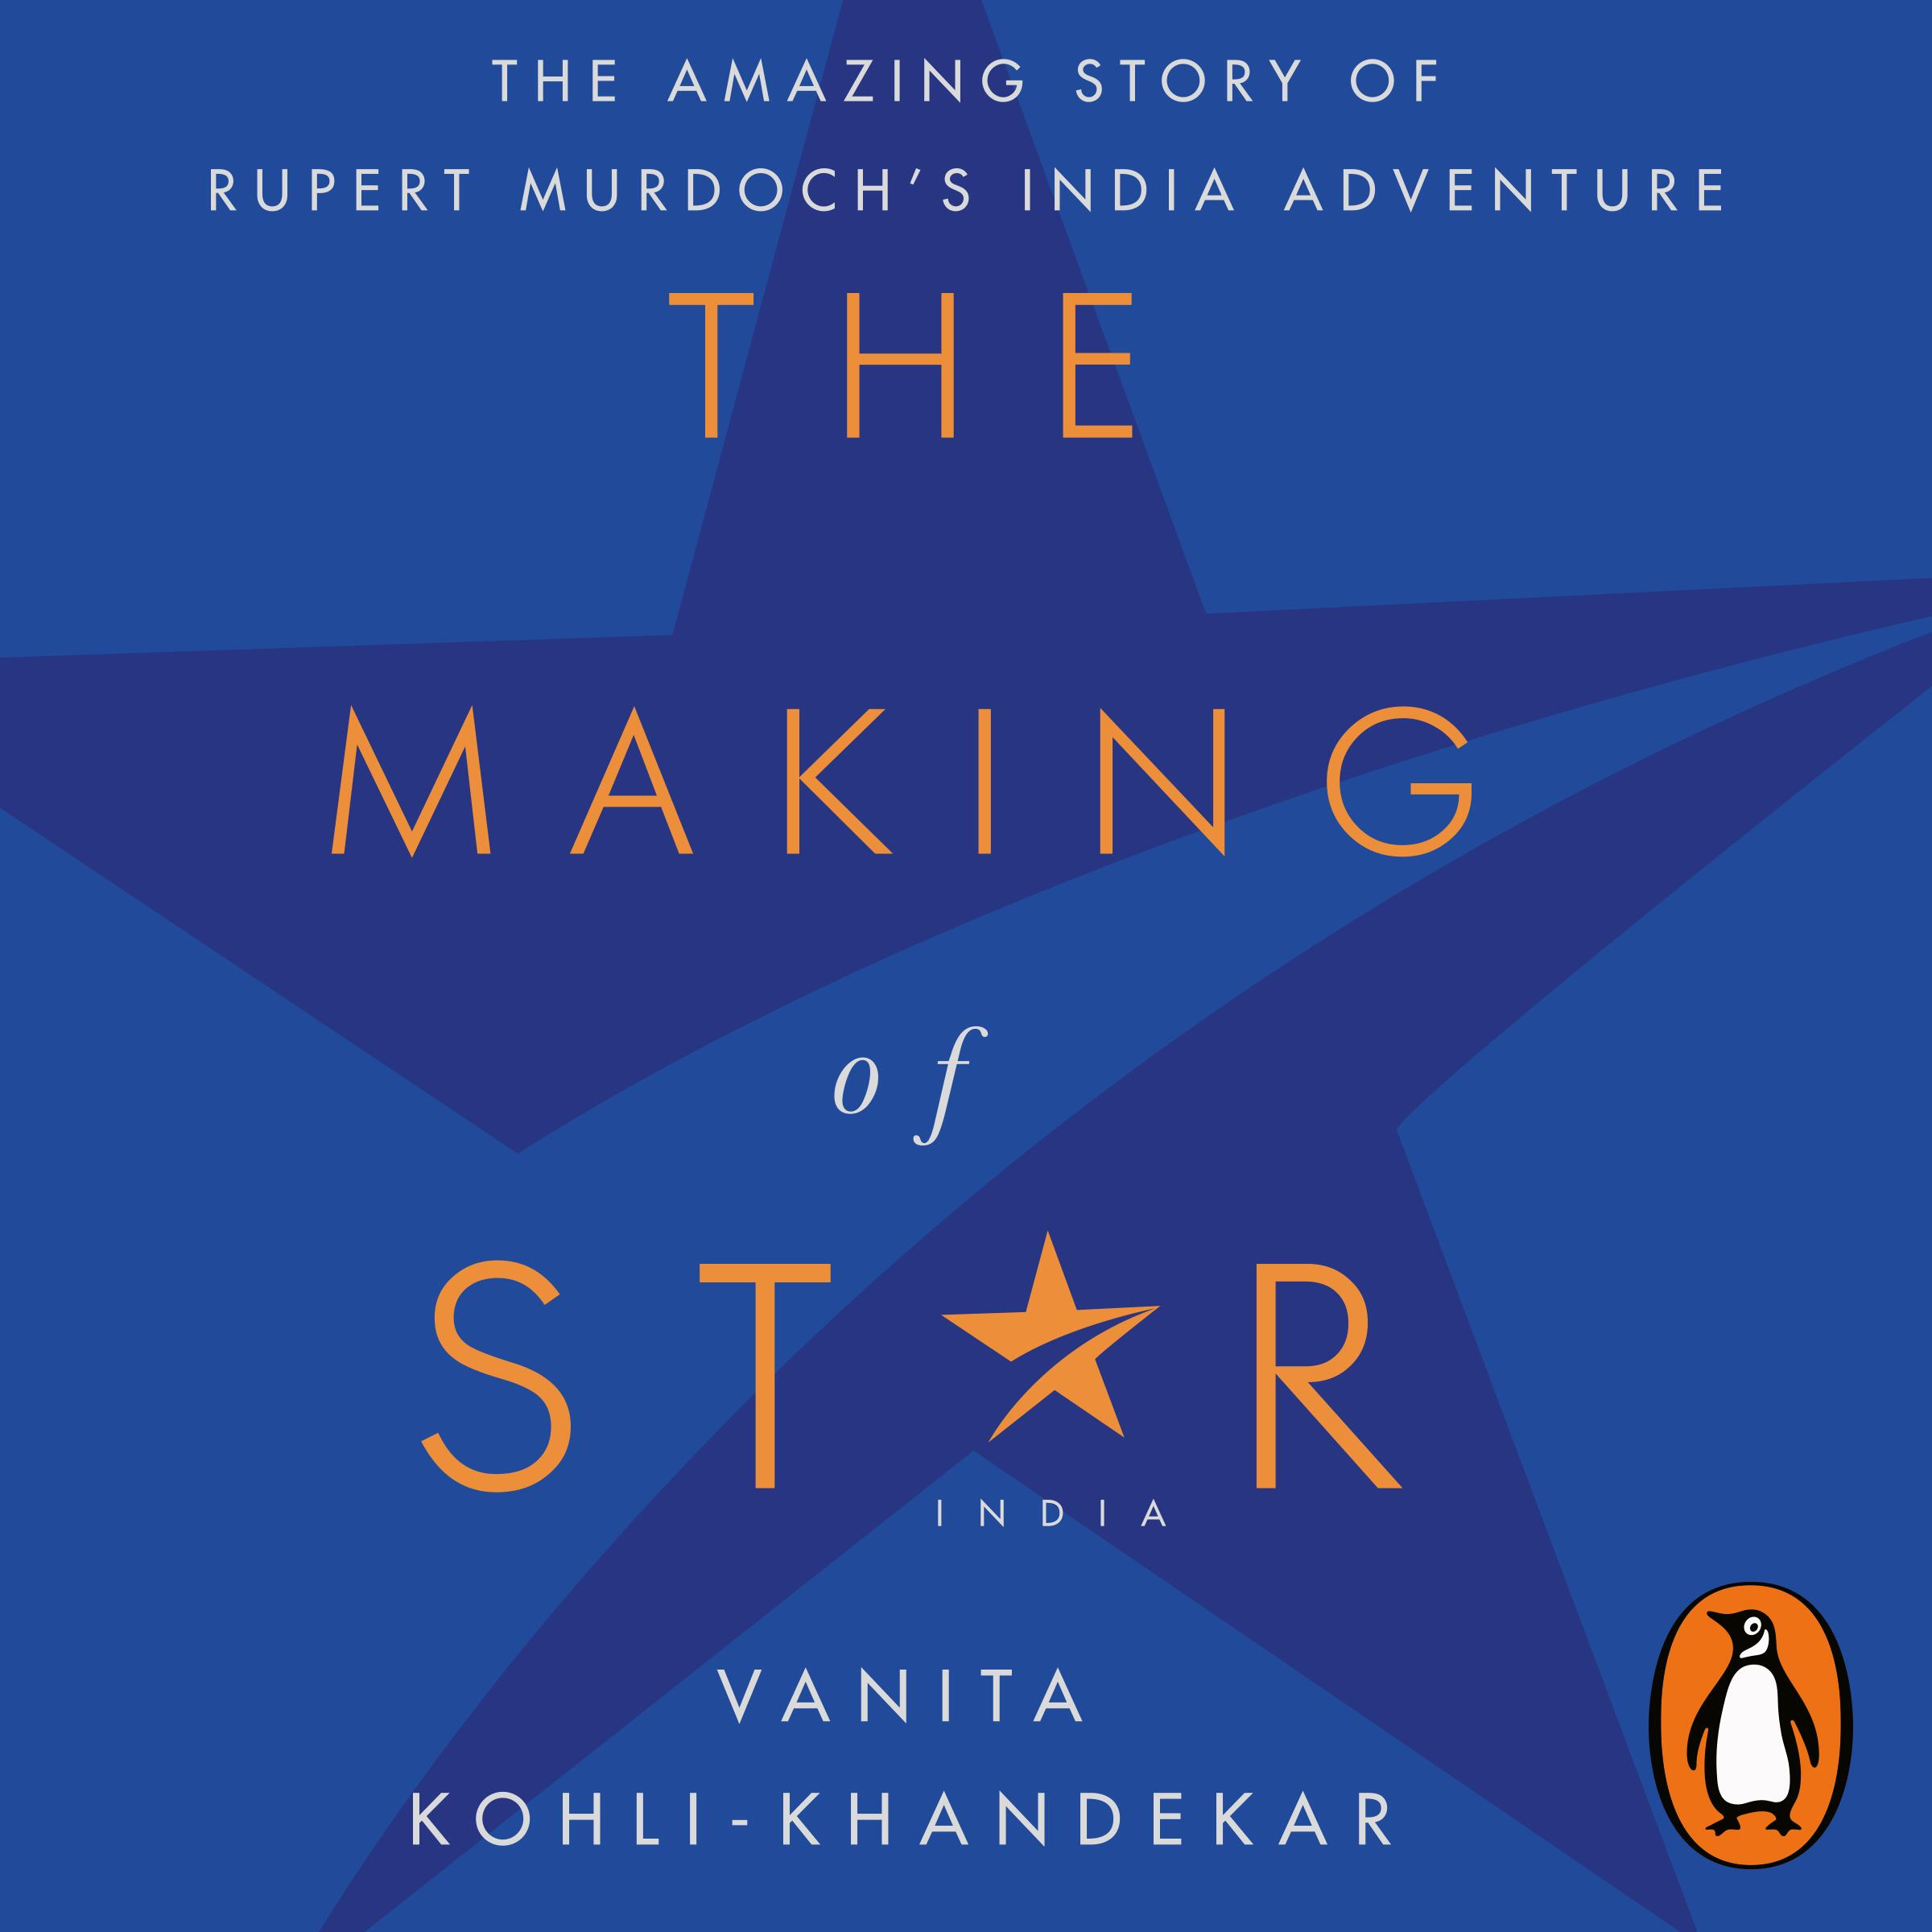 The Making of Star India